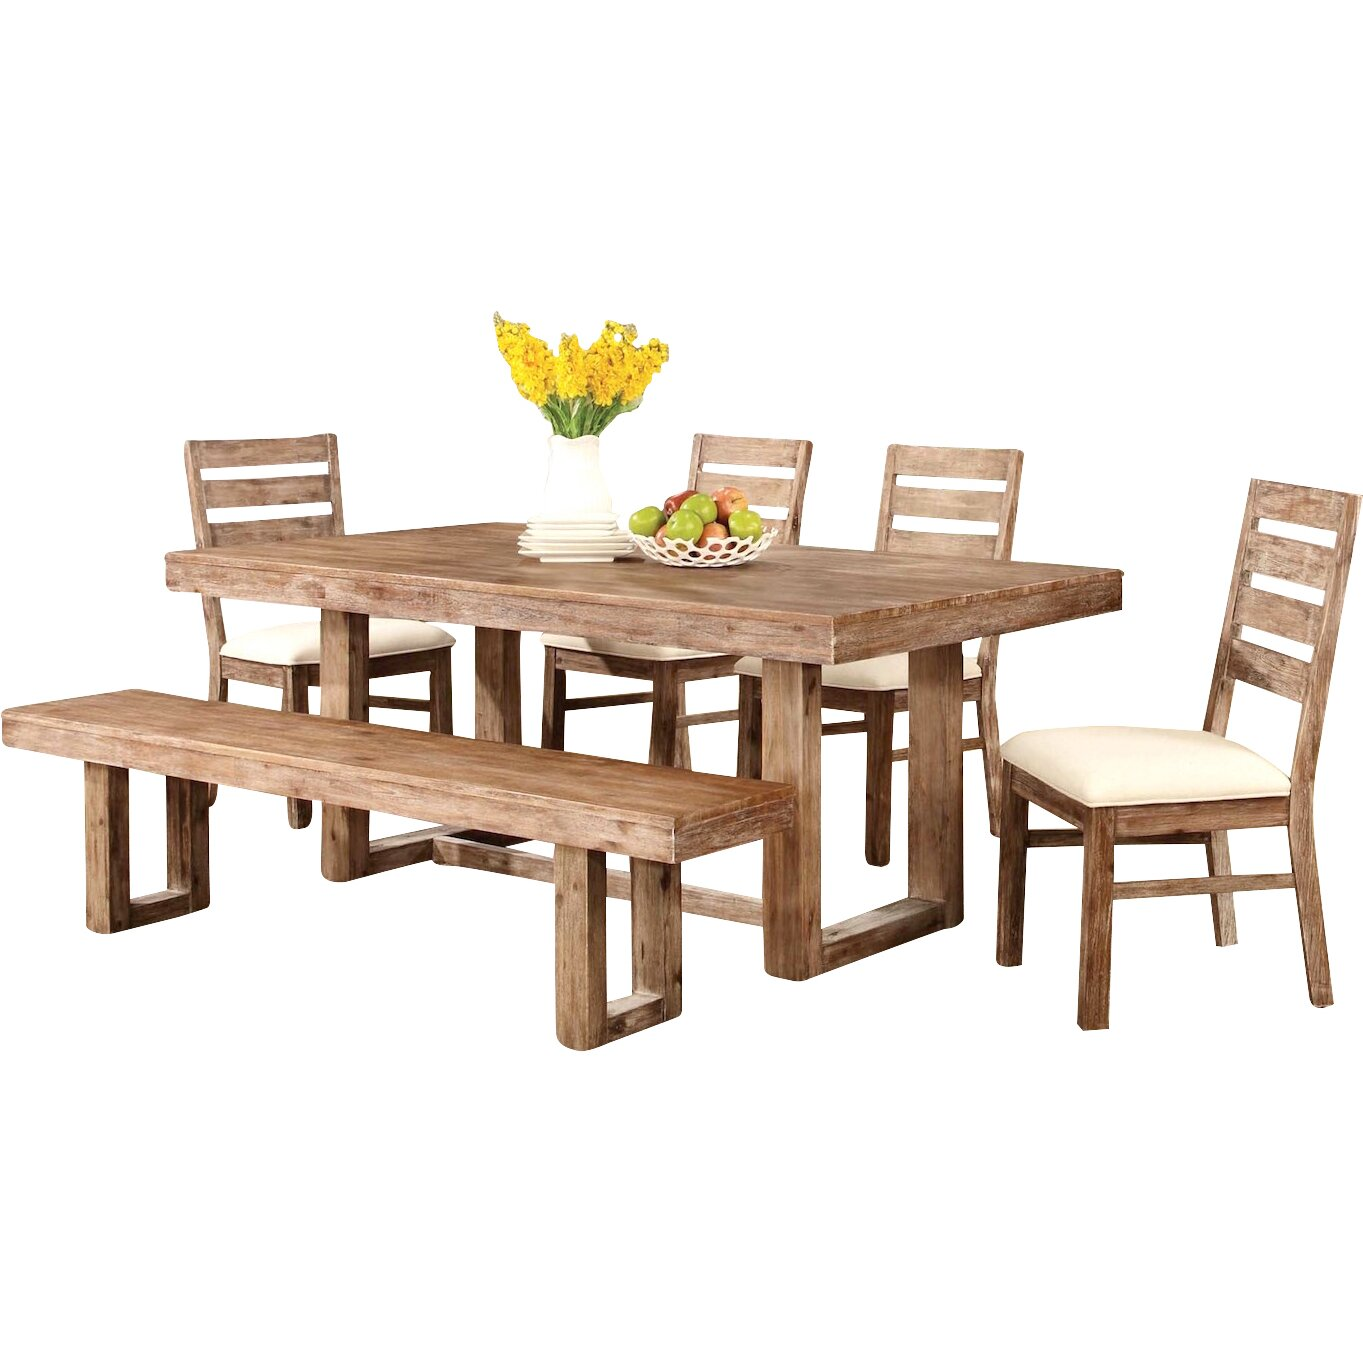 Infini furnishings underwood 6 piece dining set reviews for 2 piece dining room set